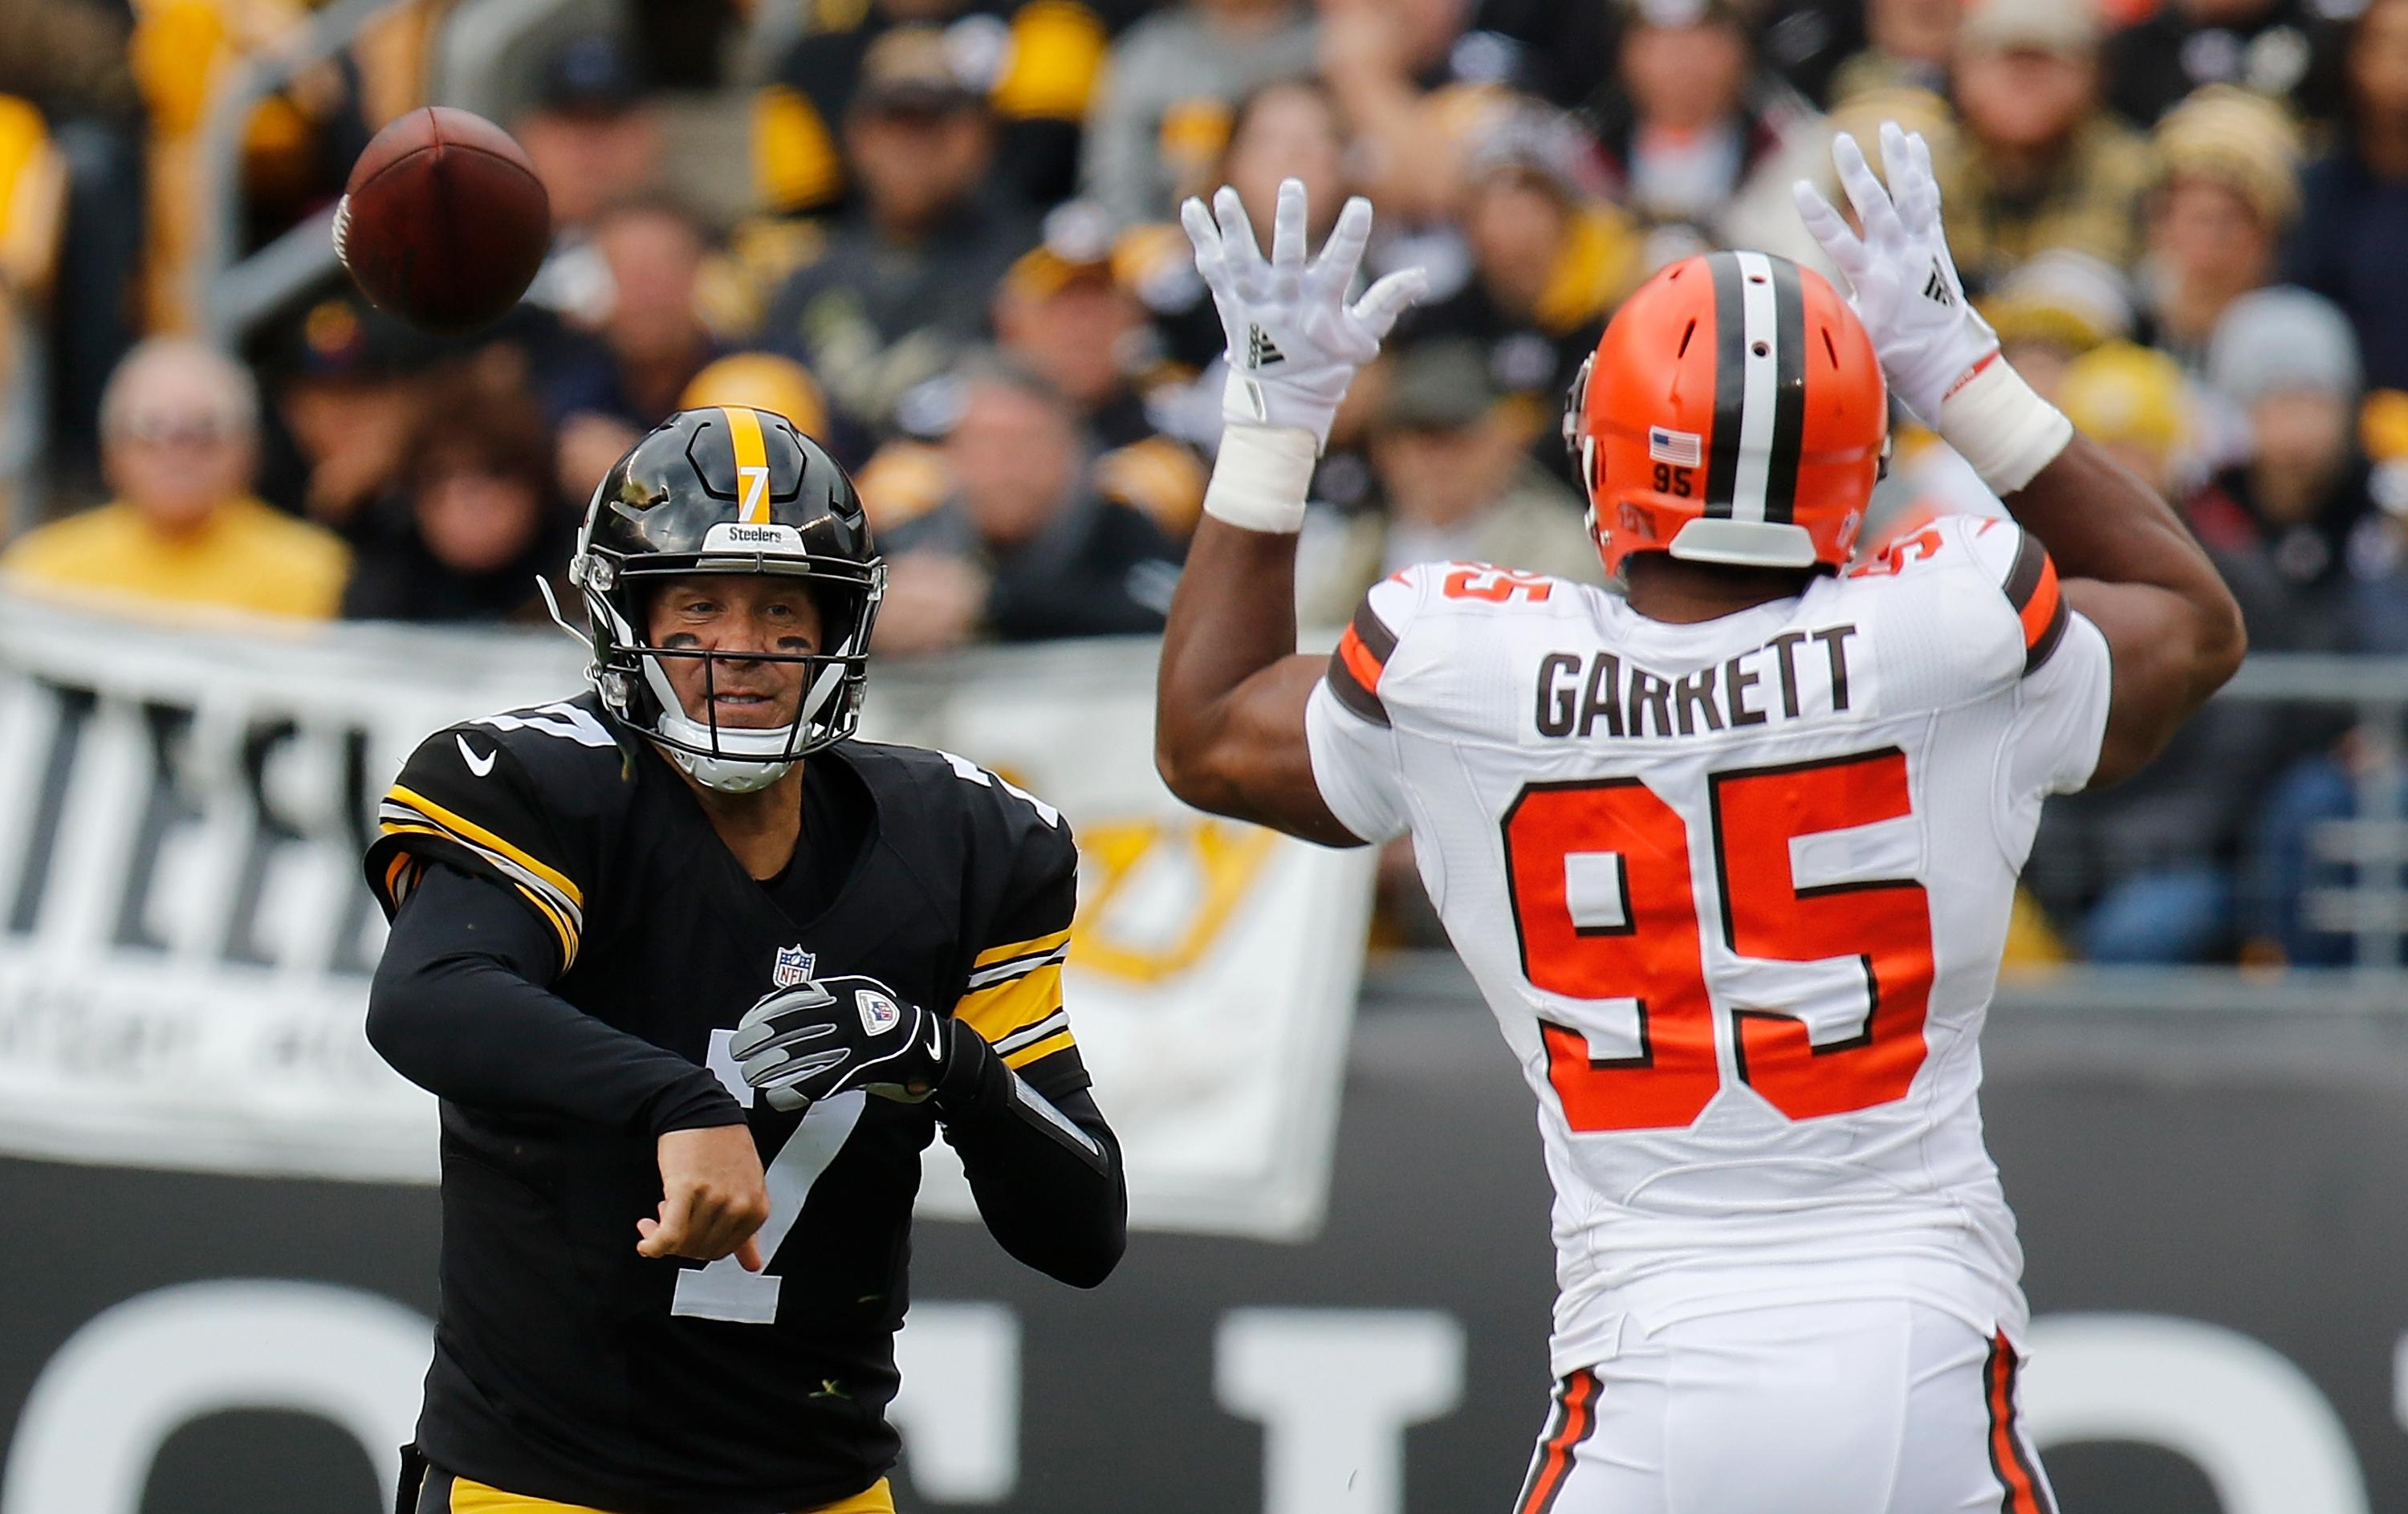 ben roethlisberger myles garrett Steelers Browns